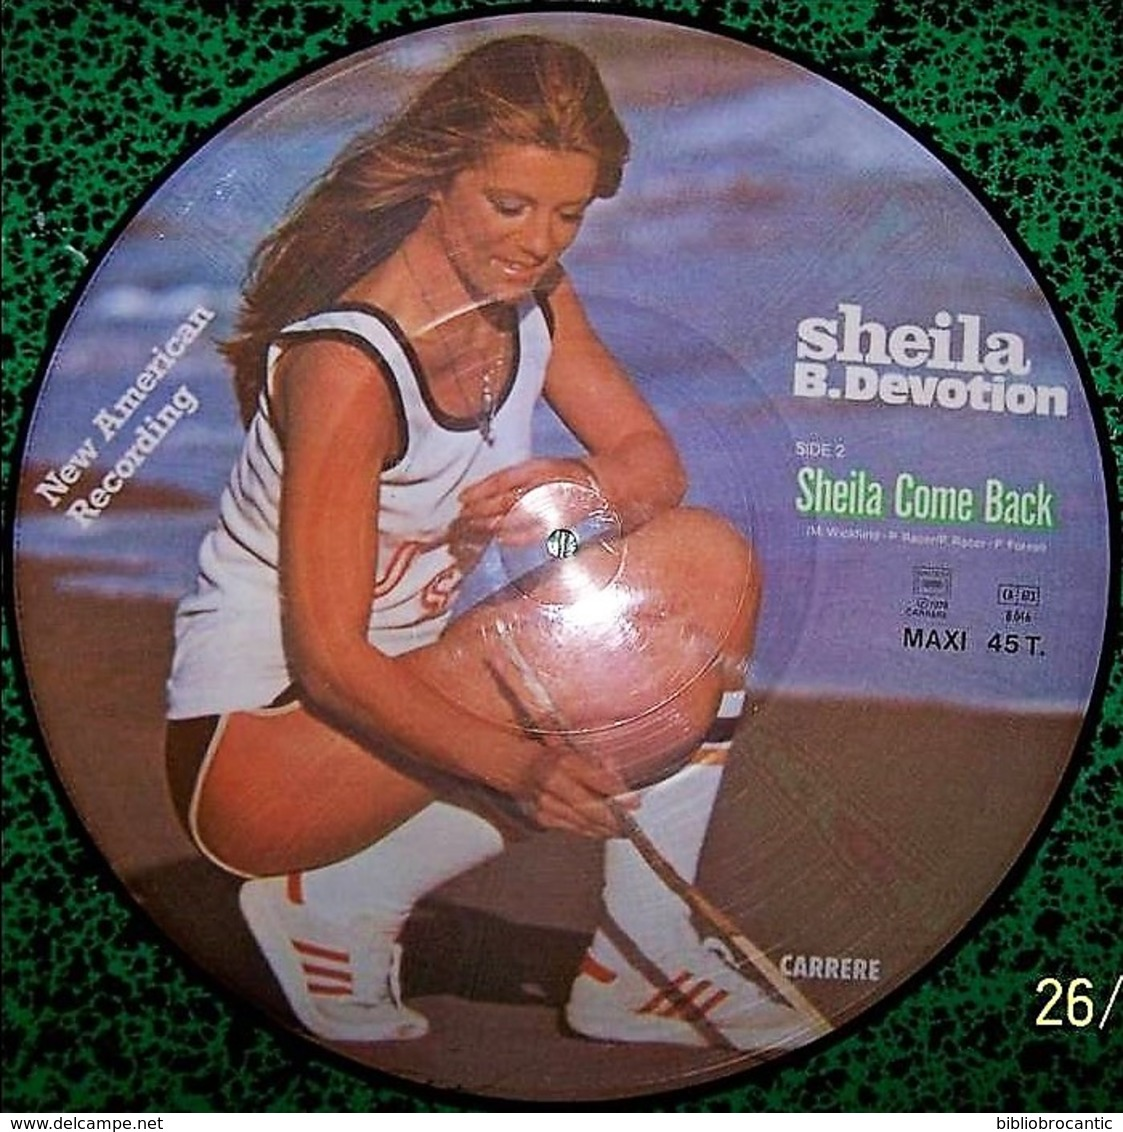 PICTURE DISC - SHEILA / B.DEVOTION - Side 1- SEVEN LONELY DAYS - Side 2 - SHEILA COME BACK - 45 T - Maxi-Single